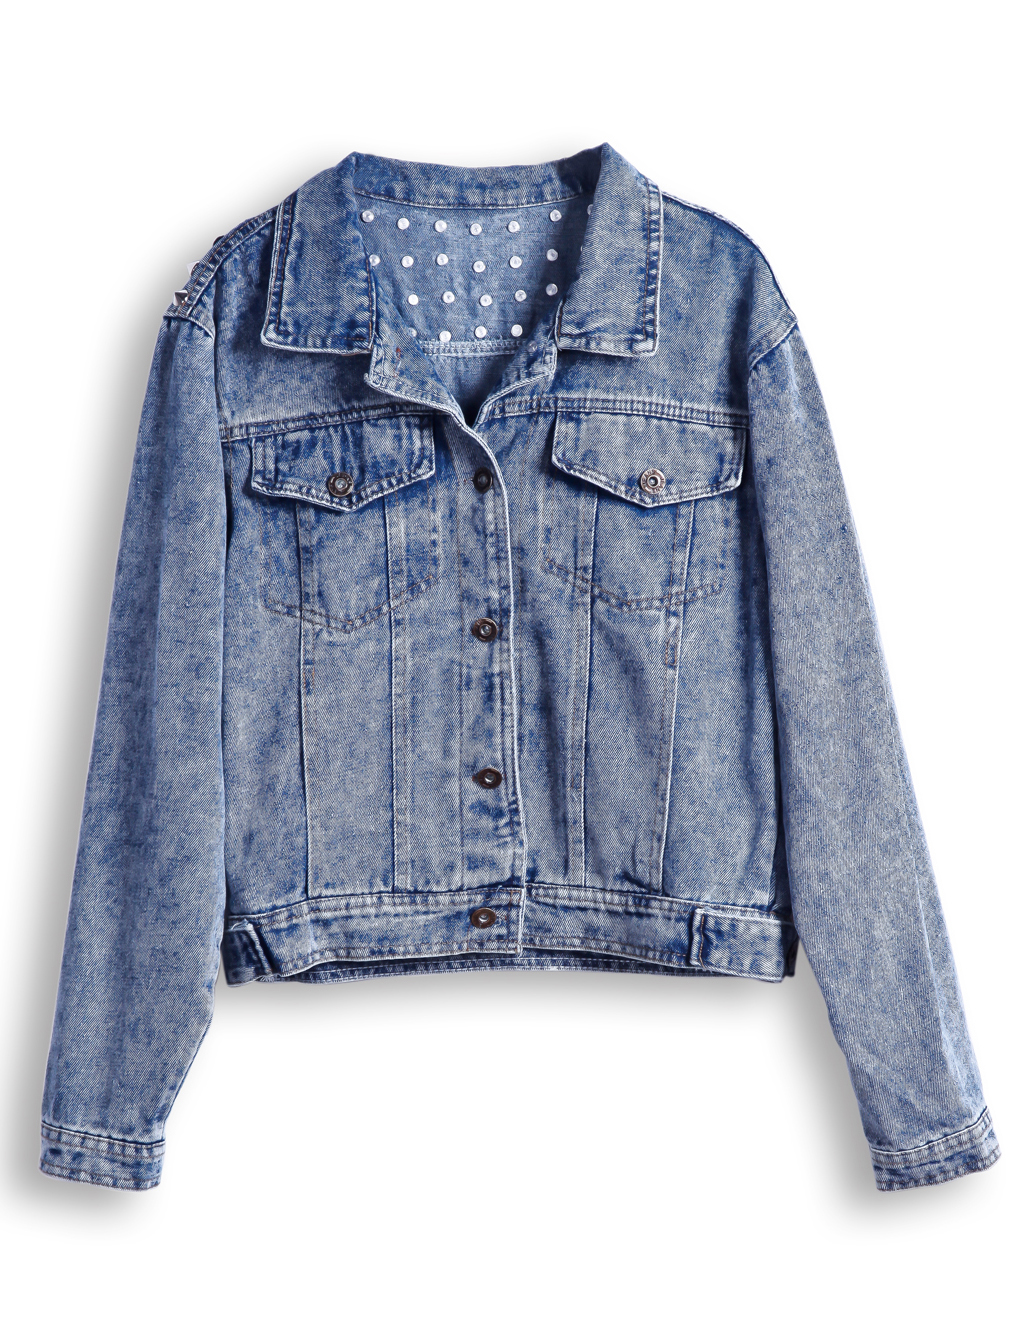 Blue Lapel Long Sleeve Rivet Crop Denim Jacket - Sheinside.com